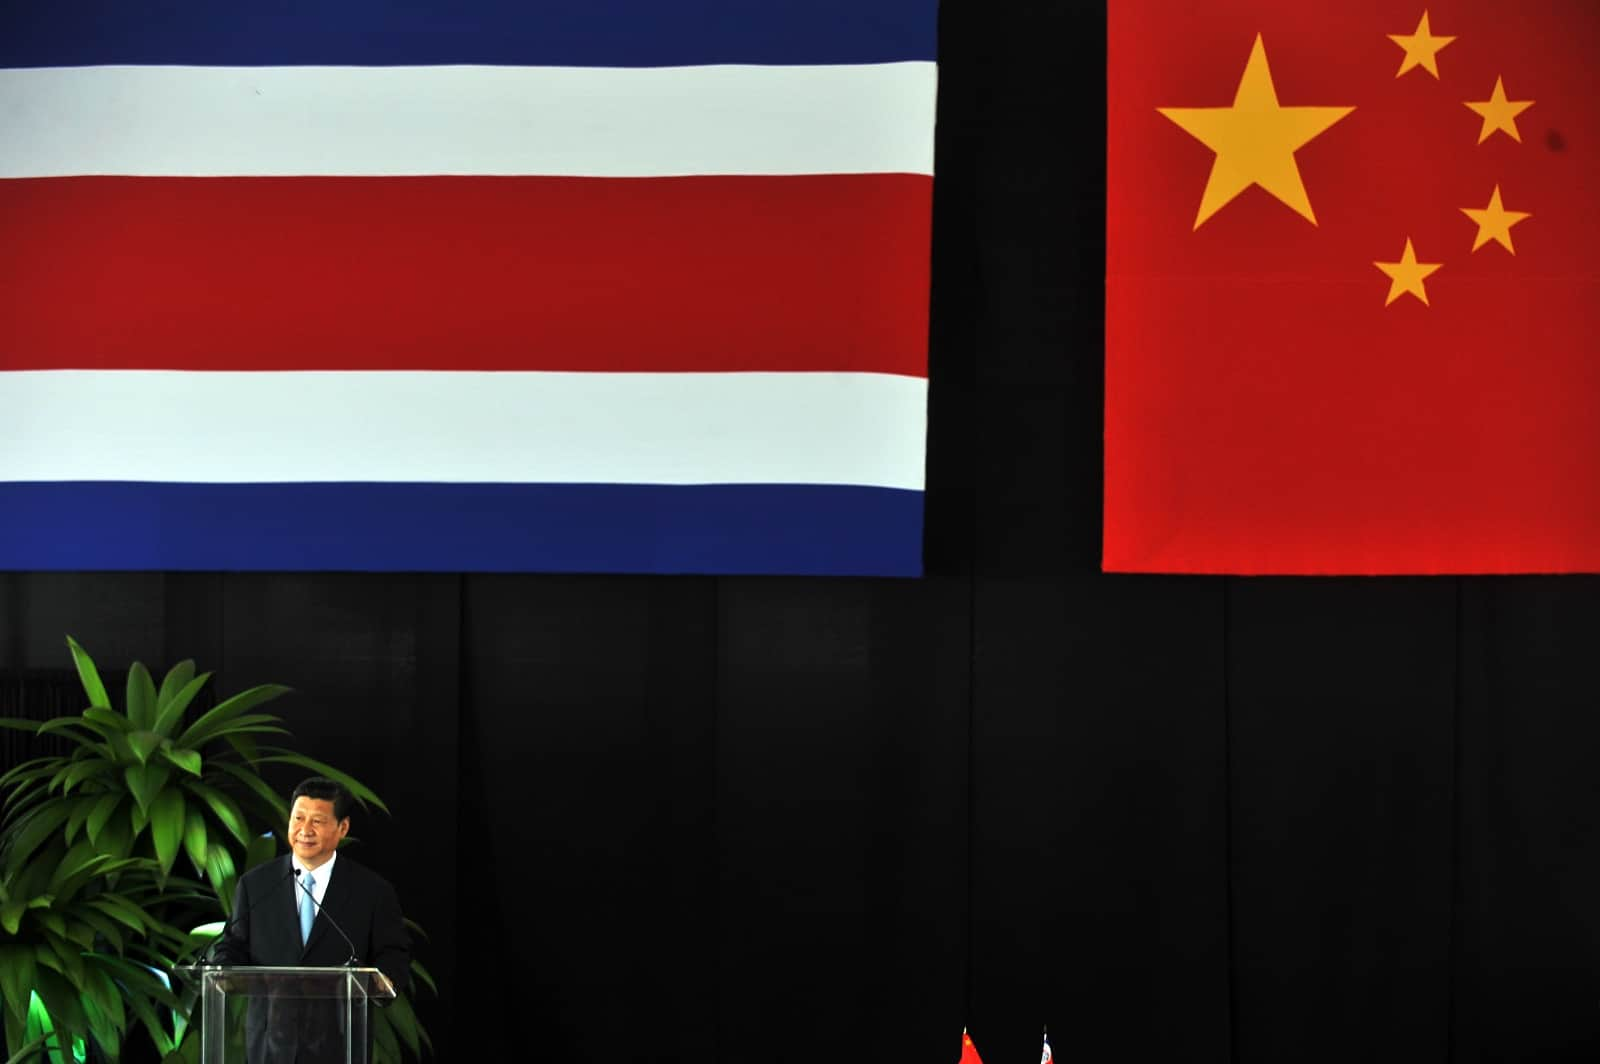 Xi Jinping in Costa Rica